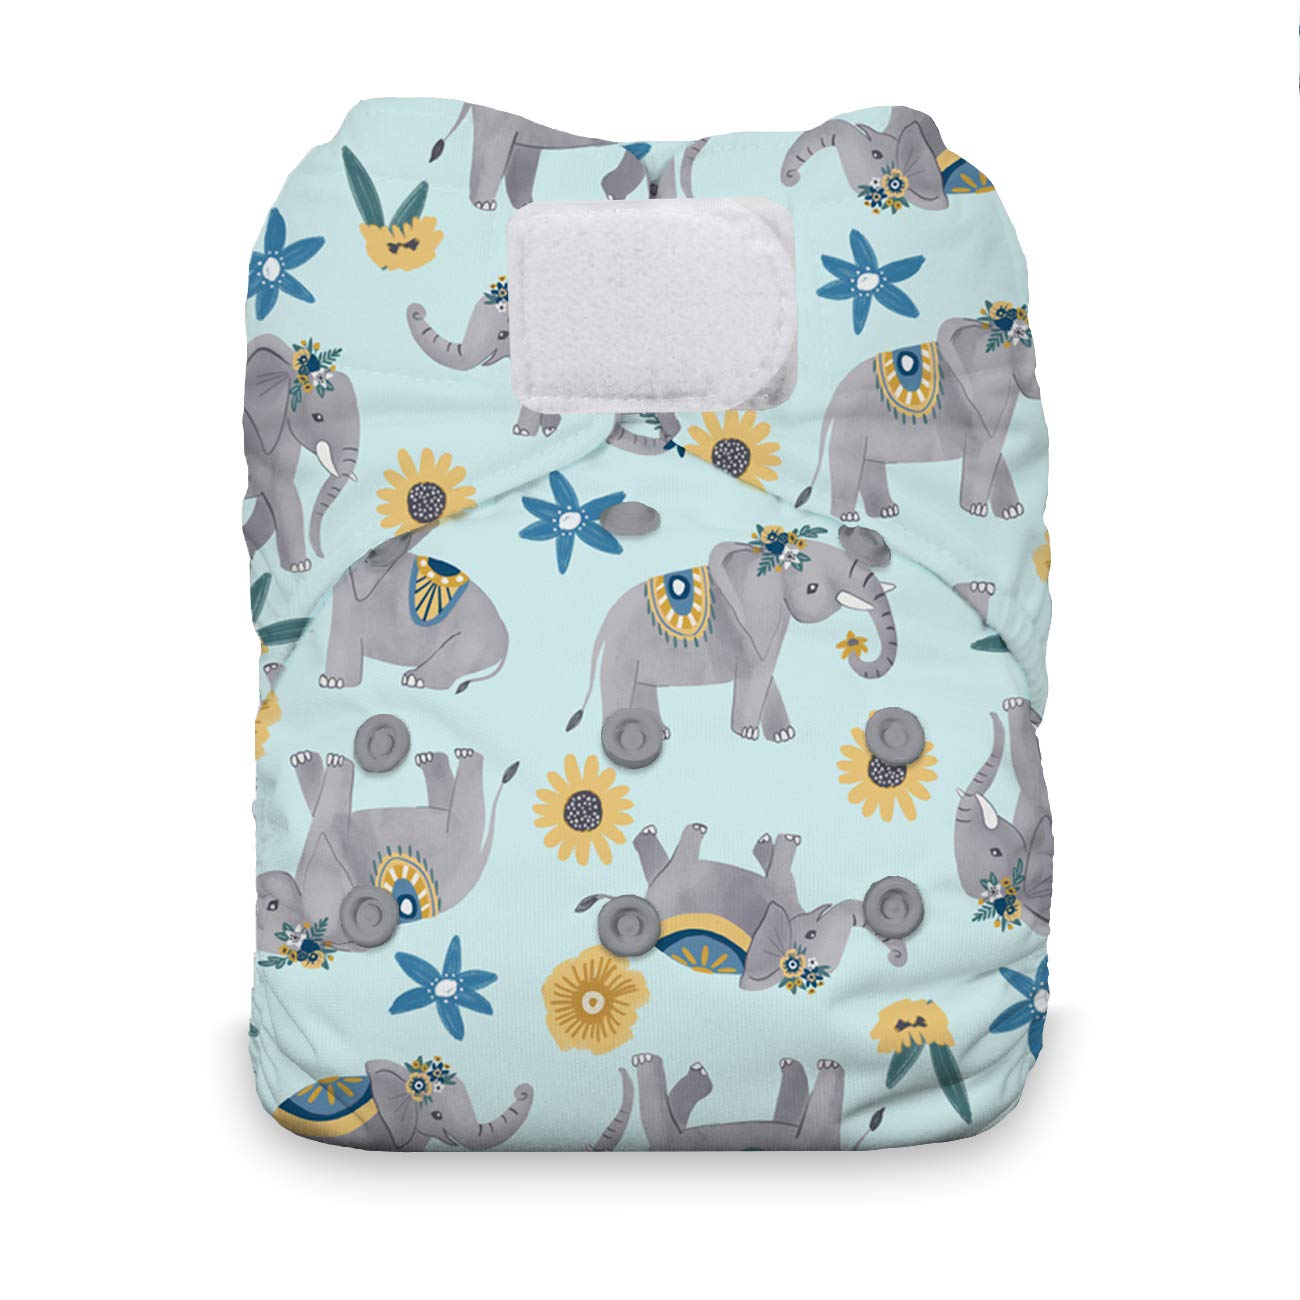 Hook /& Loop Closure Bluebonnet Thirsties One Size All in One Cloth Diaper